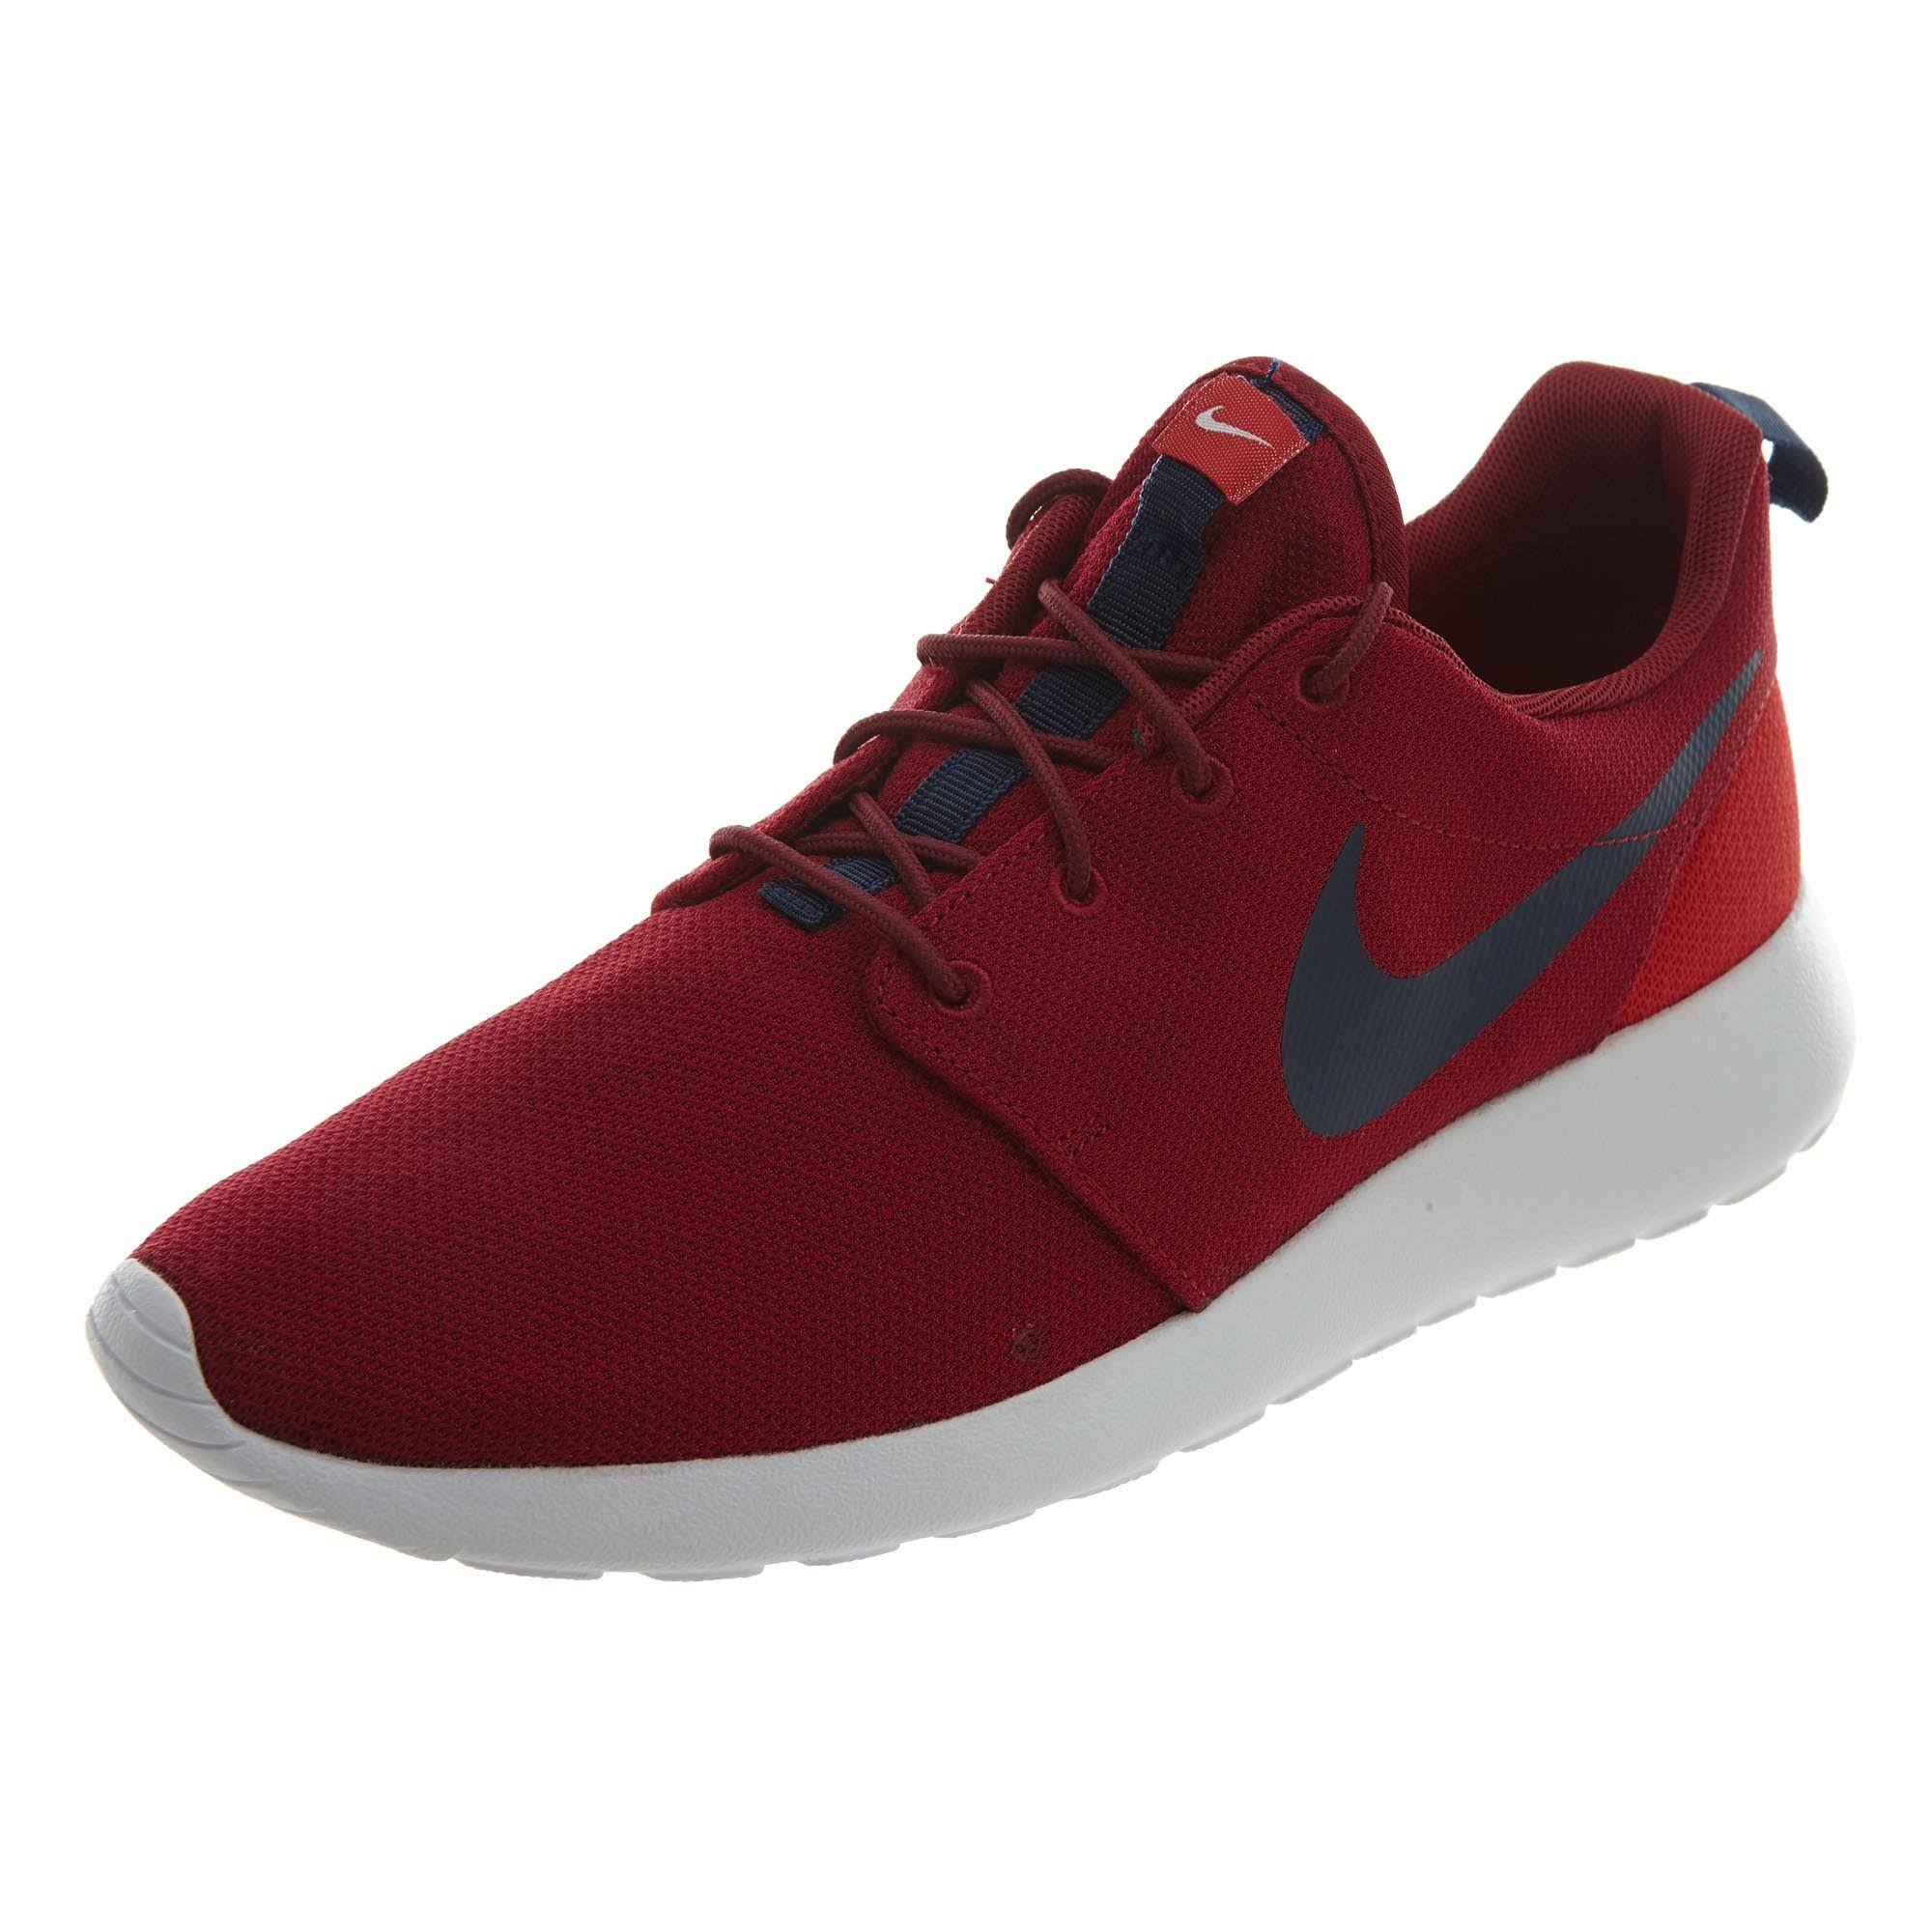 Nike Navy 5 511881 Hombre Crush Red Midnight Para 10 Roshe One rnvwI8rA